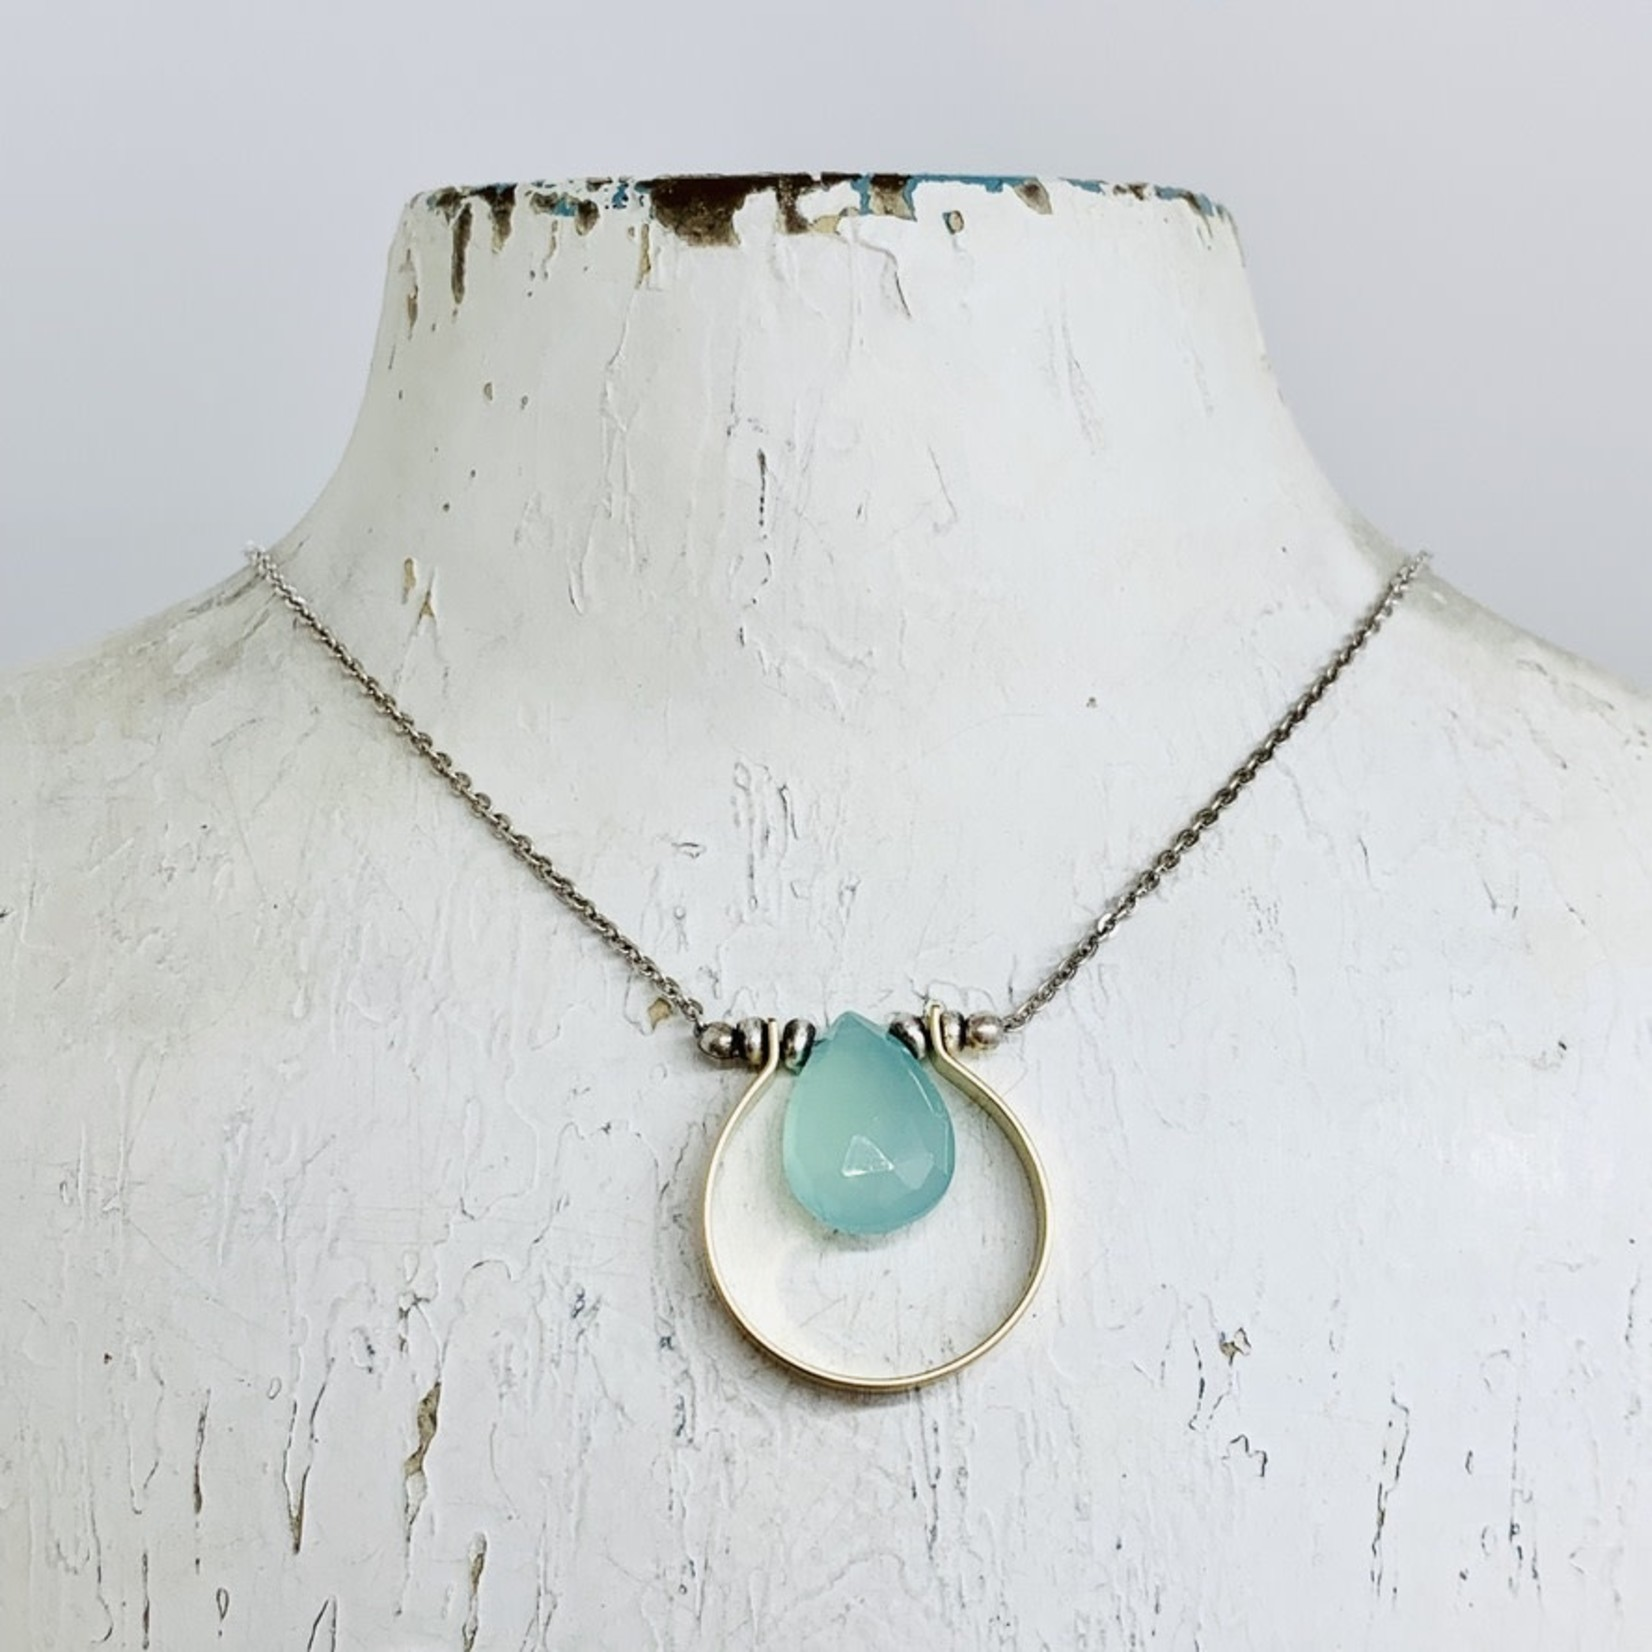 Handmade necklace with aqua chalcedony suspended in 14k gf horseshoe bead on sterling chain necklace